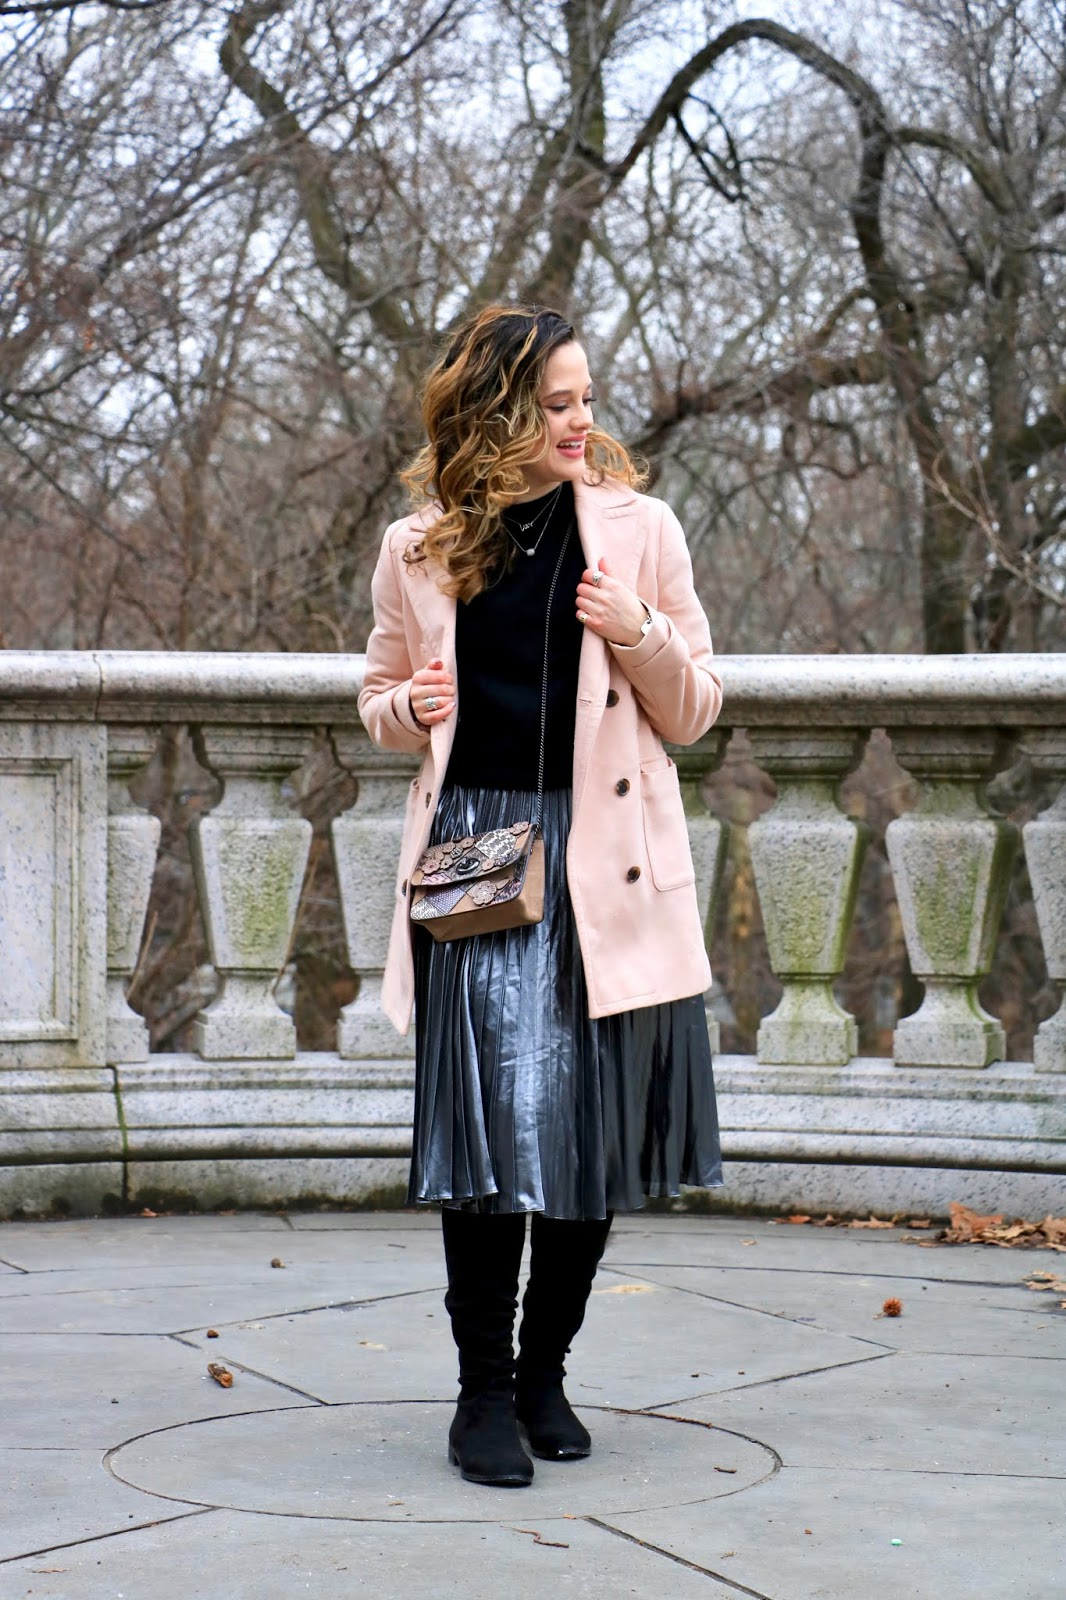 Nyc fashion blogger Kathleen Harper's winter work outfit